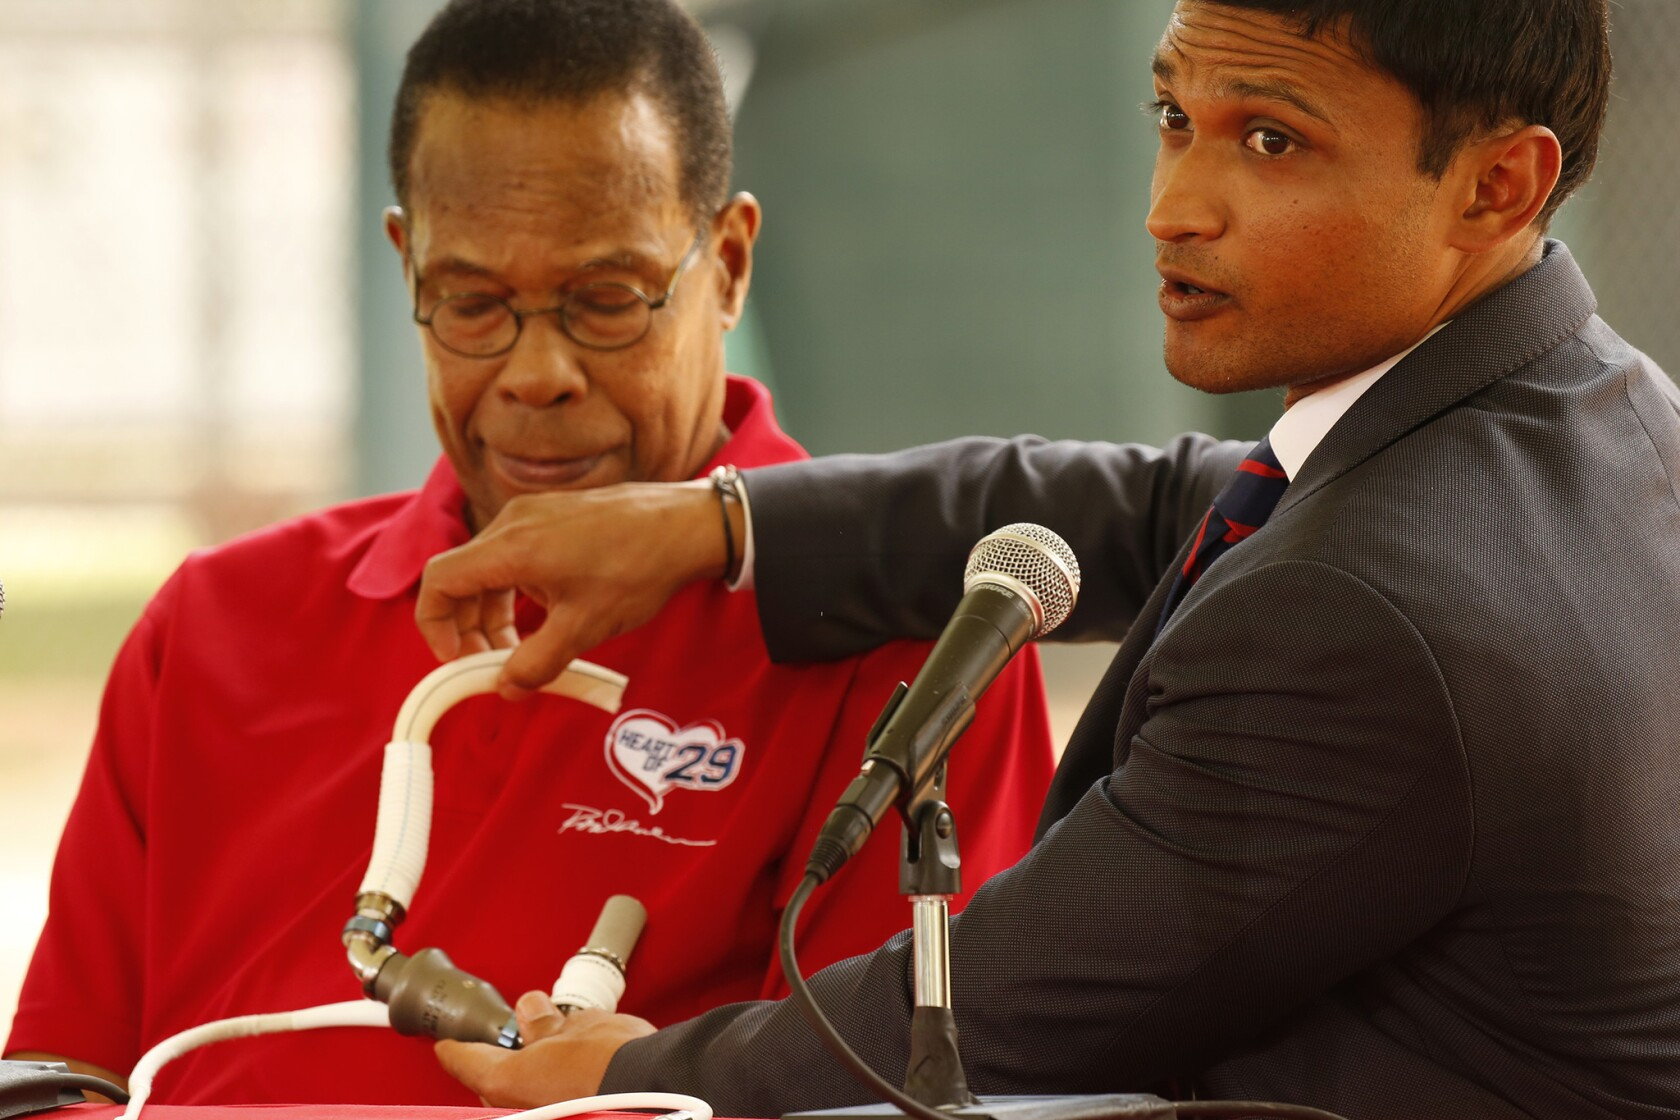 Rod Carew works to promote organ donation after receiving the